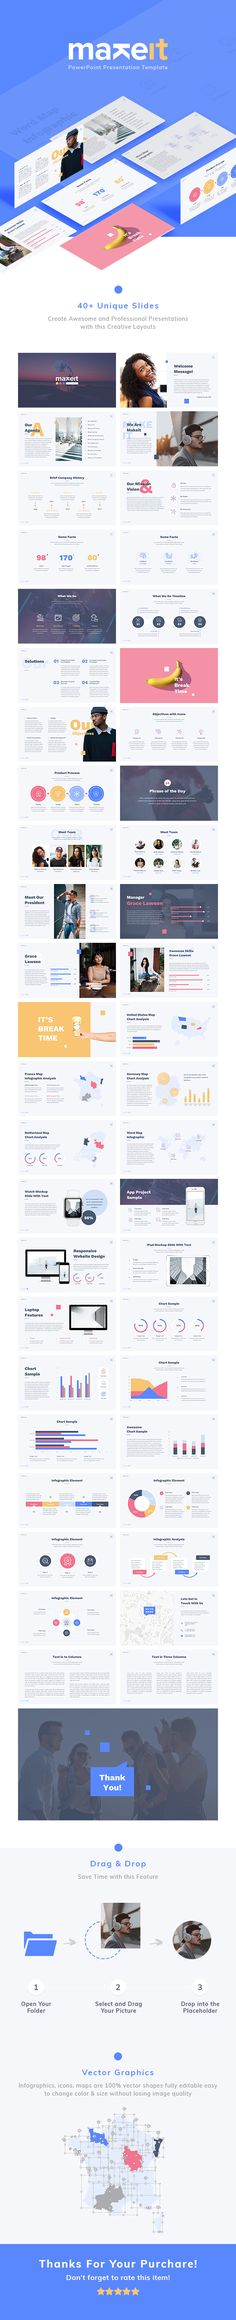 Makeit - PowerPoint Presentation Template - Business PowerPoint Templates